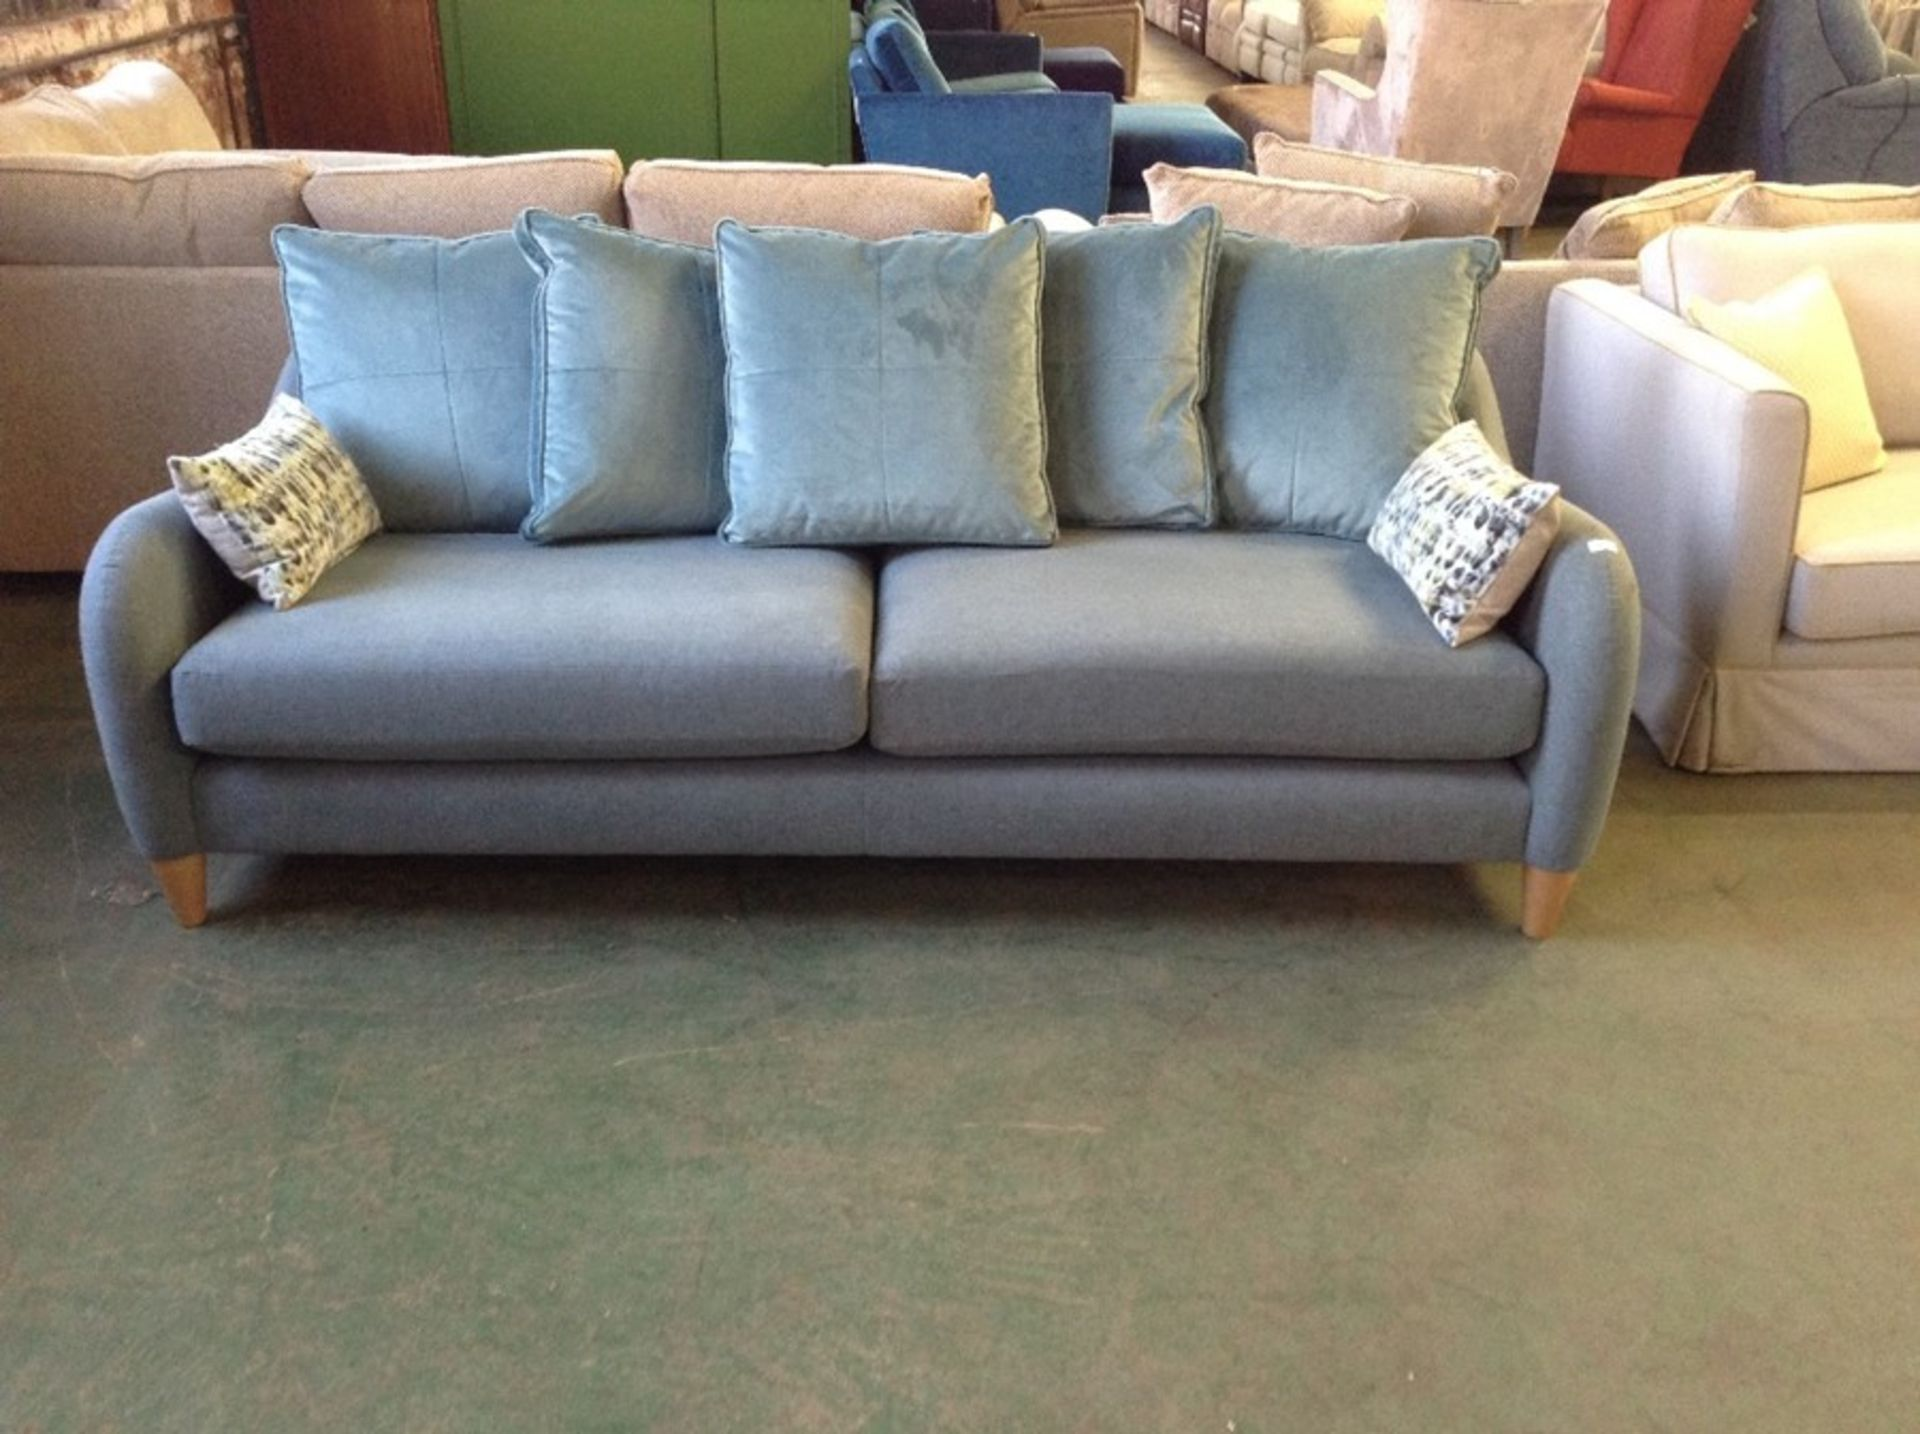 TEAL FABRIC 3 SEATER